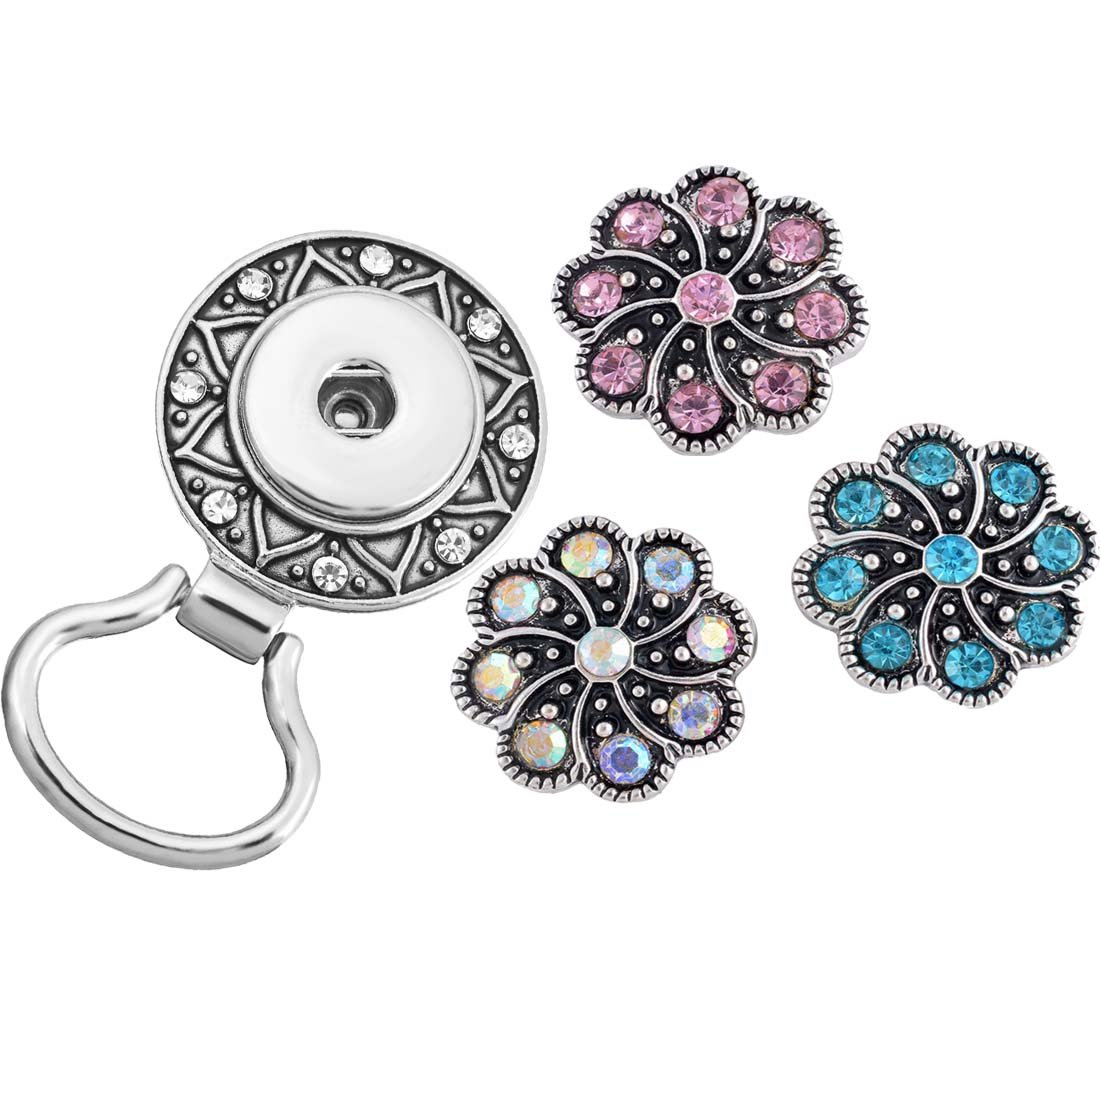 MJartoria Christmas Interchangeable Snap Buttons Centerpiece Rhinestone Eye Glass Holding Magnetic Brooch (Multicolor 1)